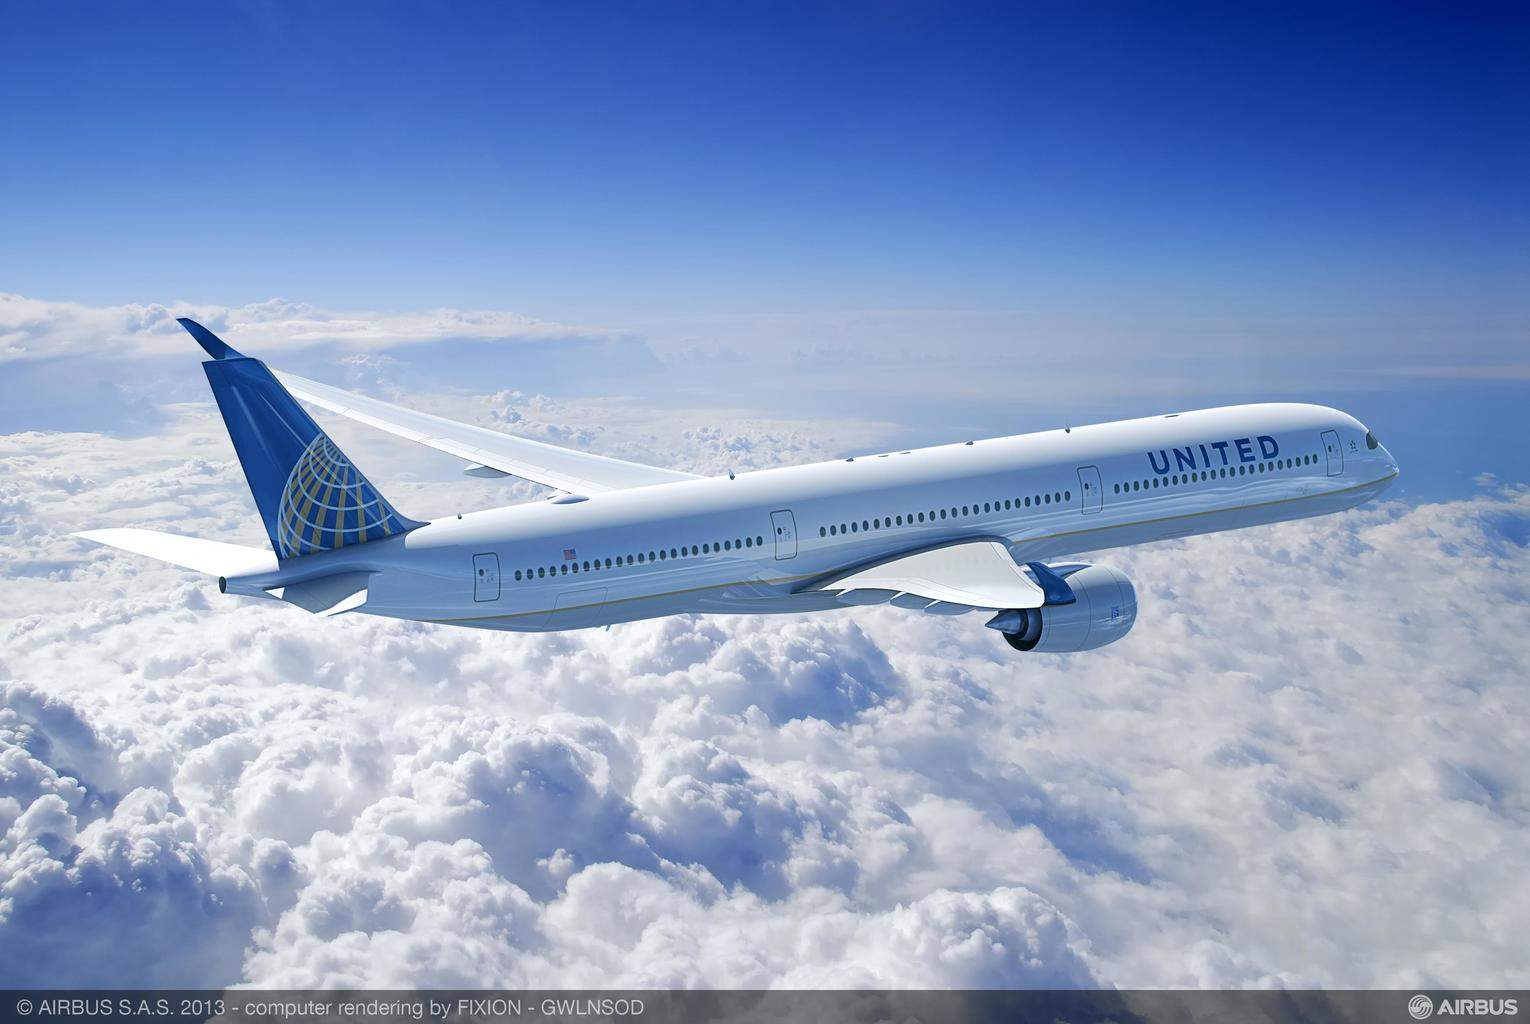 United Airlines looking into changing Airbus A350-1000XWB order into an Airbus A330 and/or Airbus A350-900XWB one